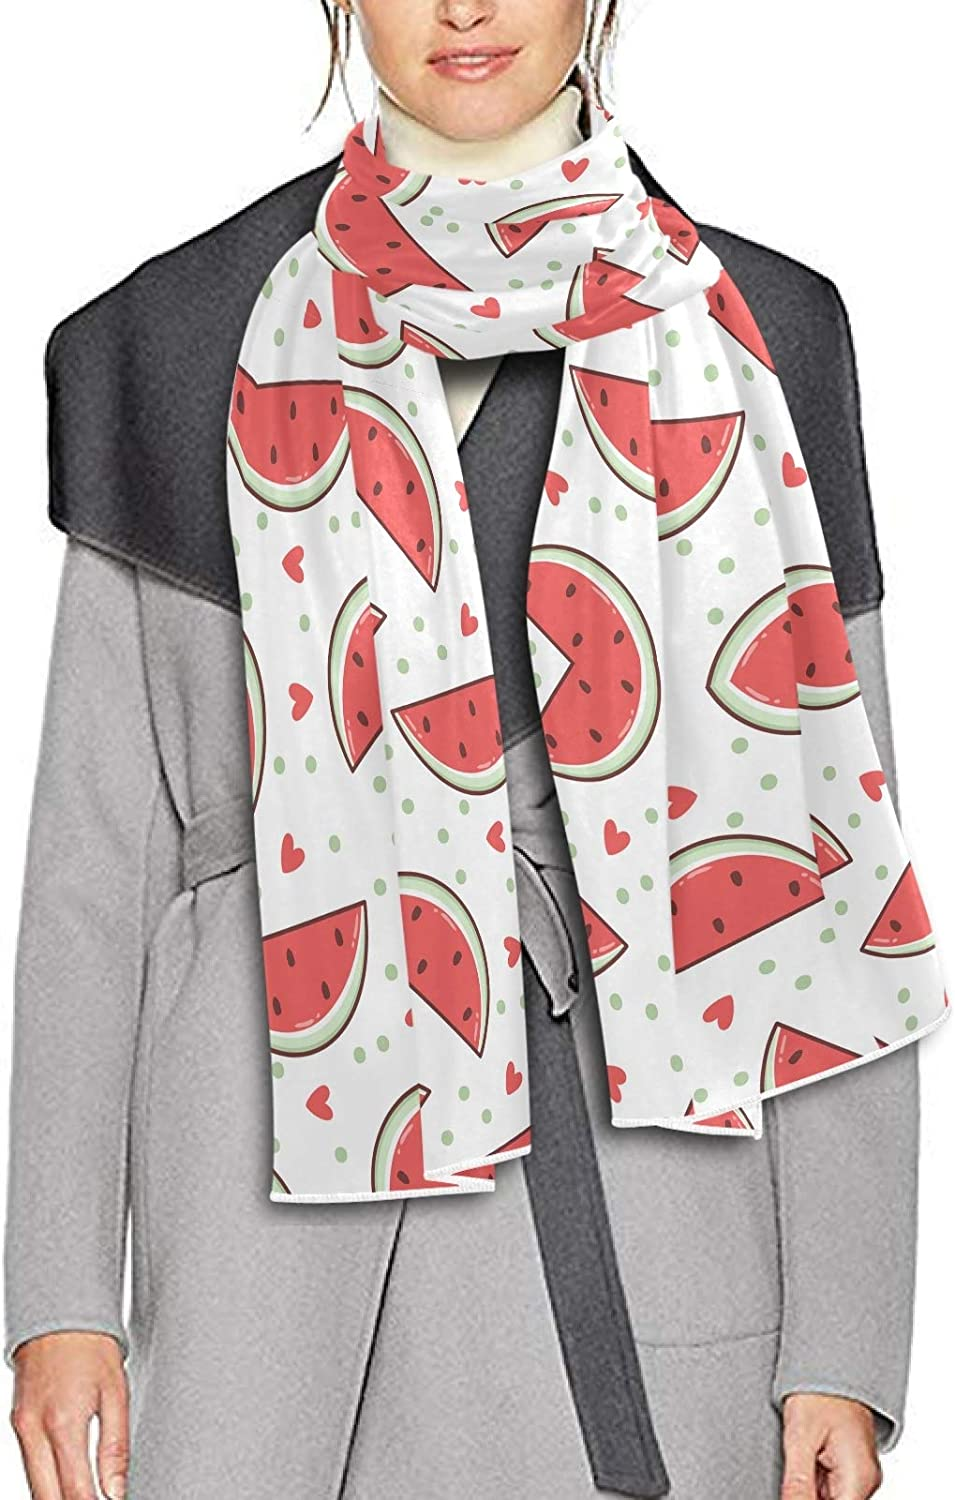 Scarf for Women and Men Fruits Watermelon Scarlet Blanket Shawl Scarves Wraps Thick Soft Winter Oversized Scarf Lightweight